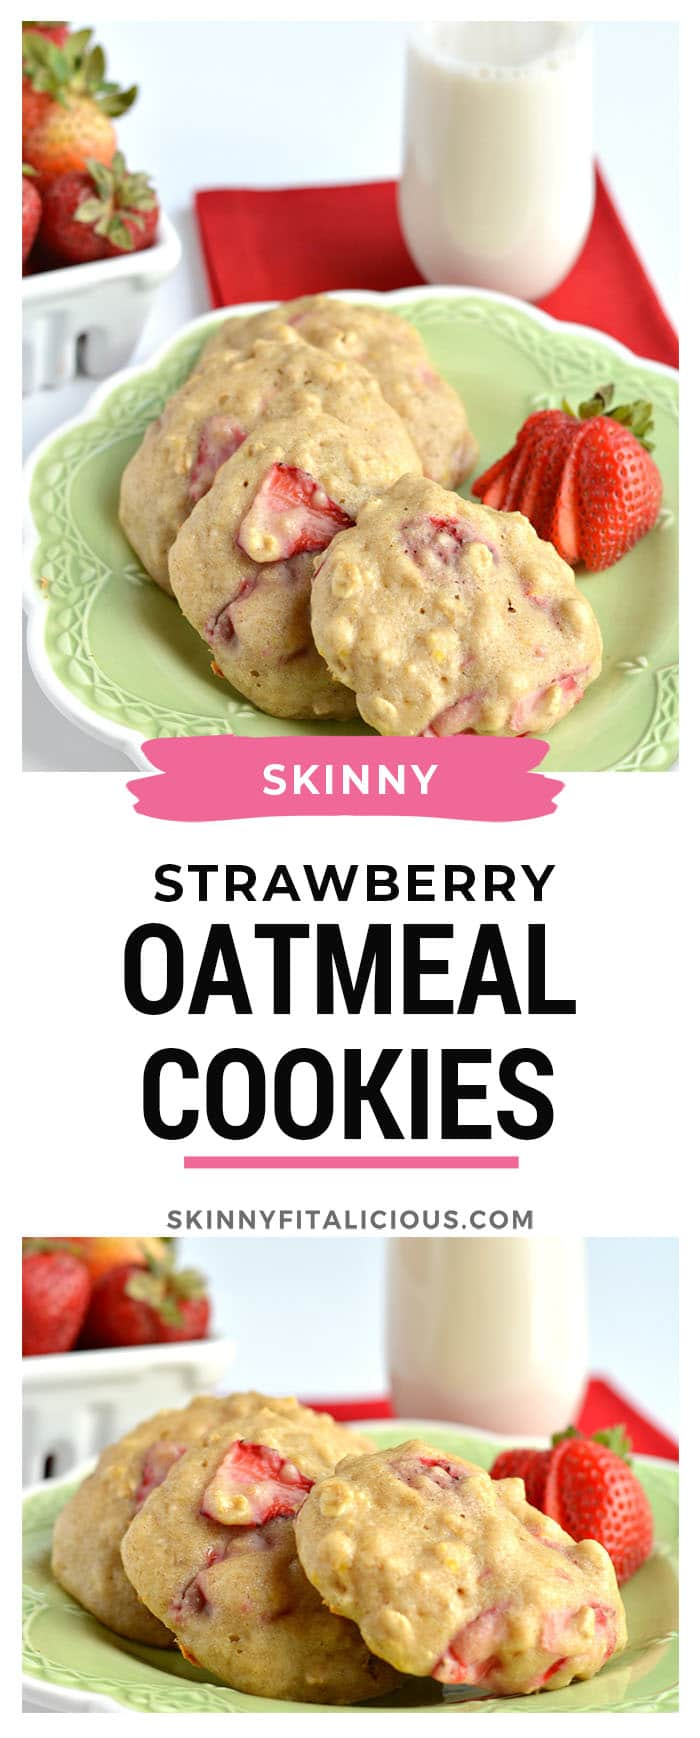 Healthy Strawberry Oatmeal Cookies! Chewy and creamy cookies filled with Greek yogurt,lemon, applesauce and fresh strawberries. A tasty breakfast or anytime snack under 100 calories! Gluten Free + Low Calorie